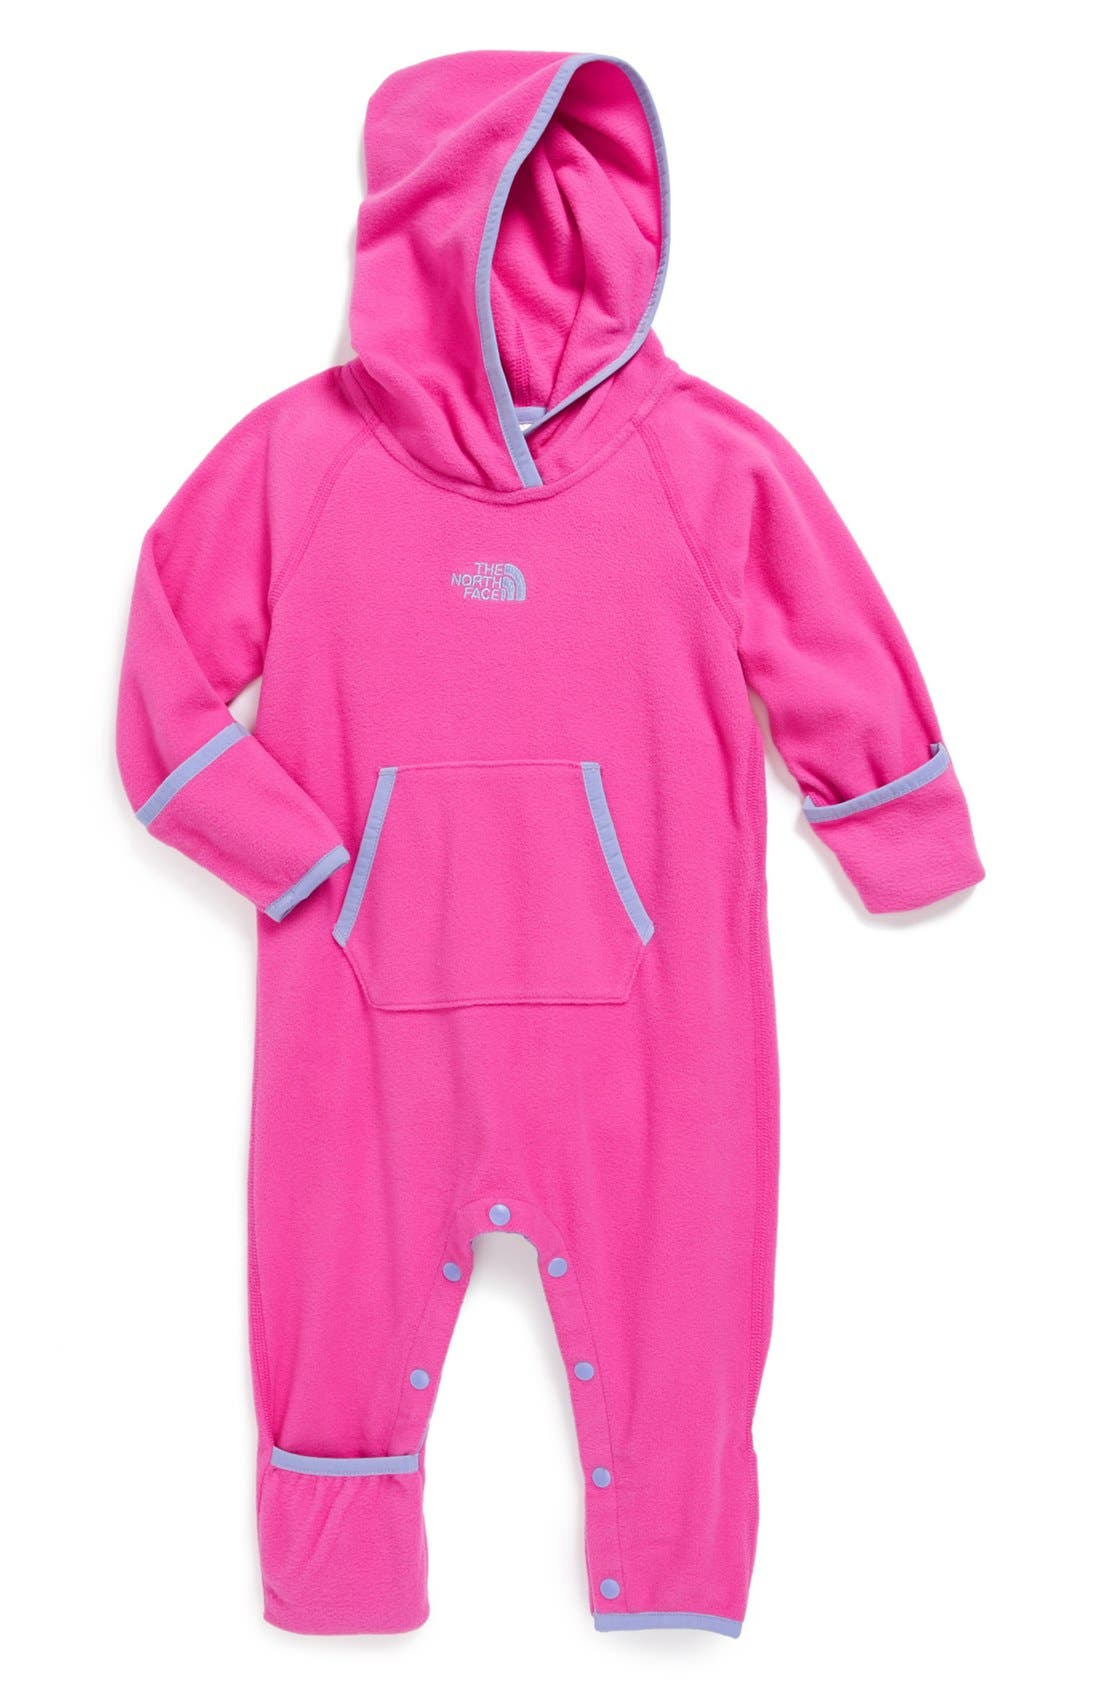 Alternate Image 1 Selected - The North Face 'Glacier' Fleece Bunting (Baby Girls)